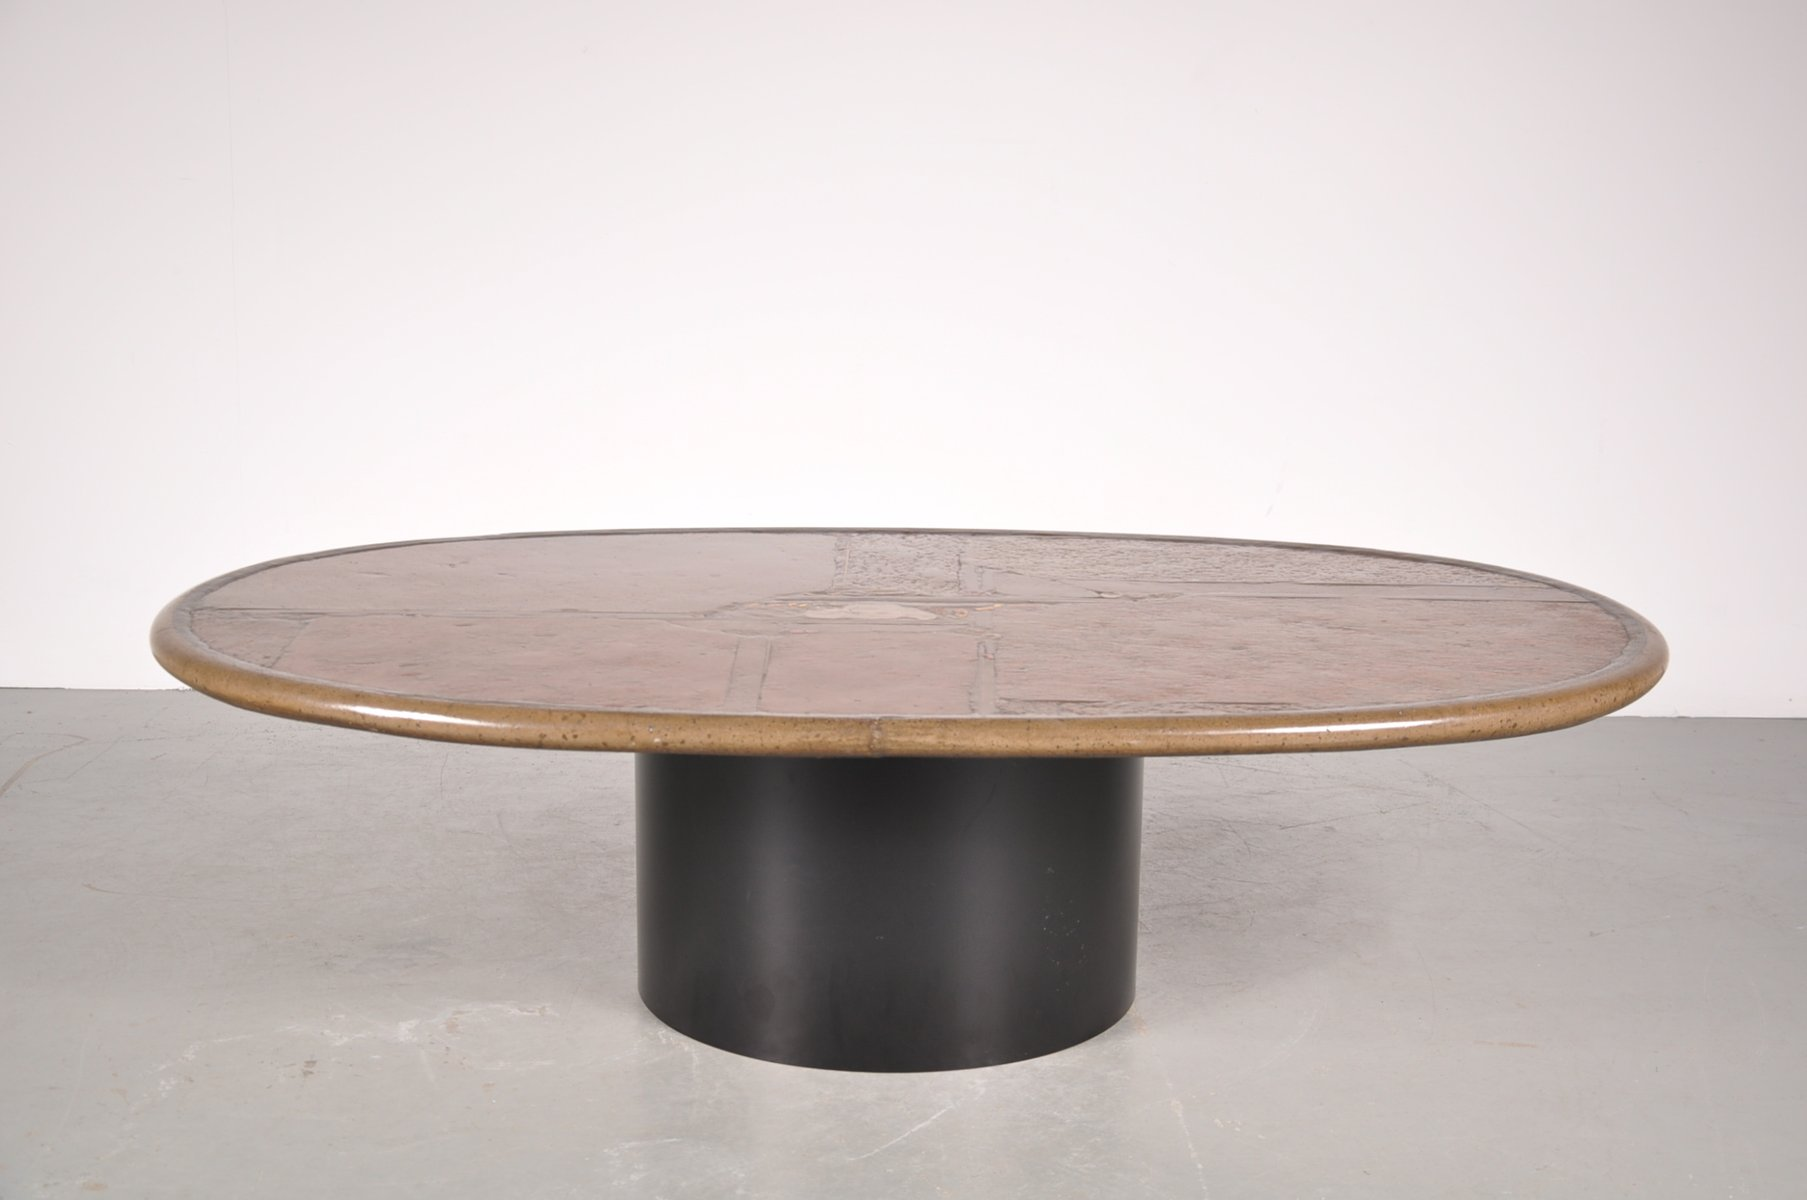 Vintage Stone Coffee Table by Paul Kingma 1993 for sale at Pamono